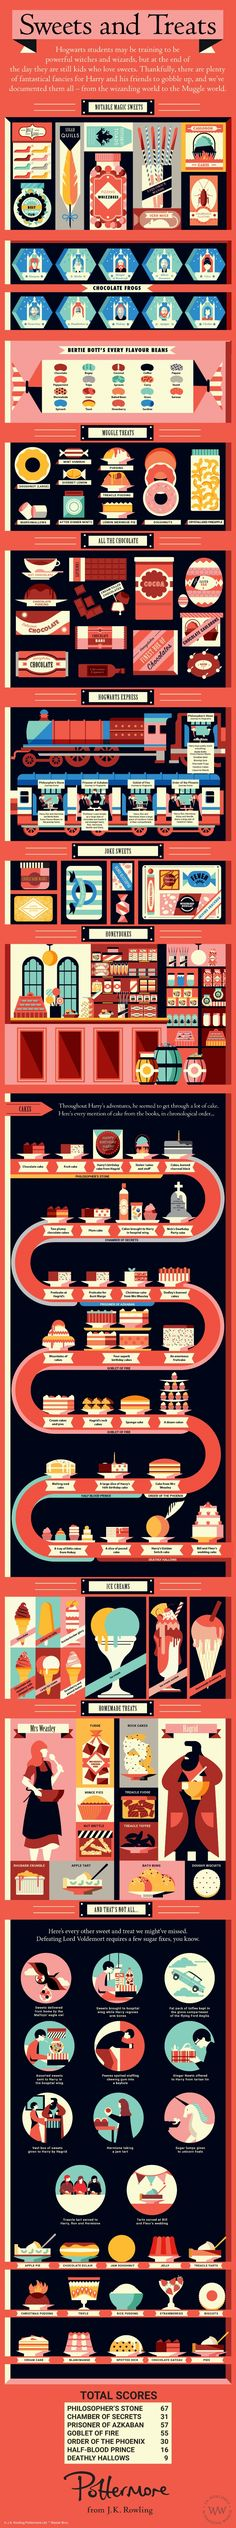 Sweets & Treats from the Wizarding World Infographic #Infographics